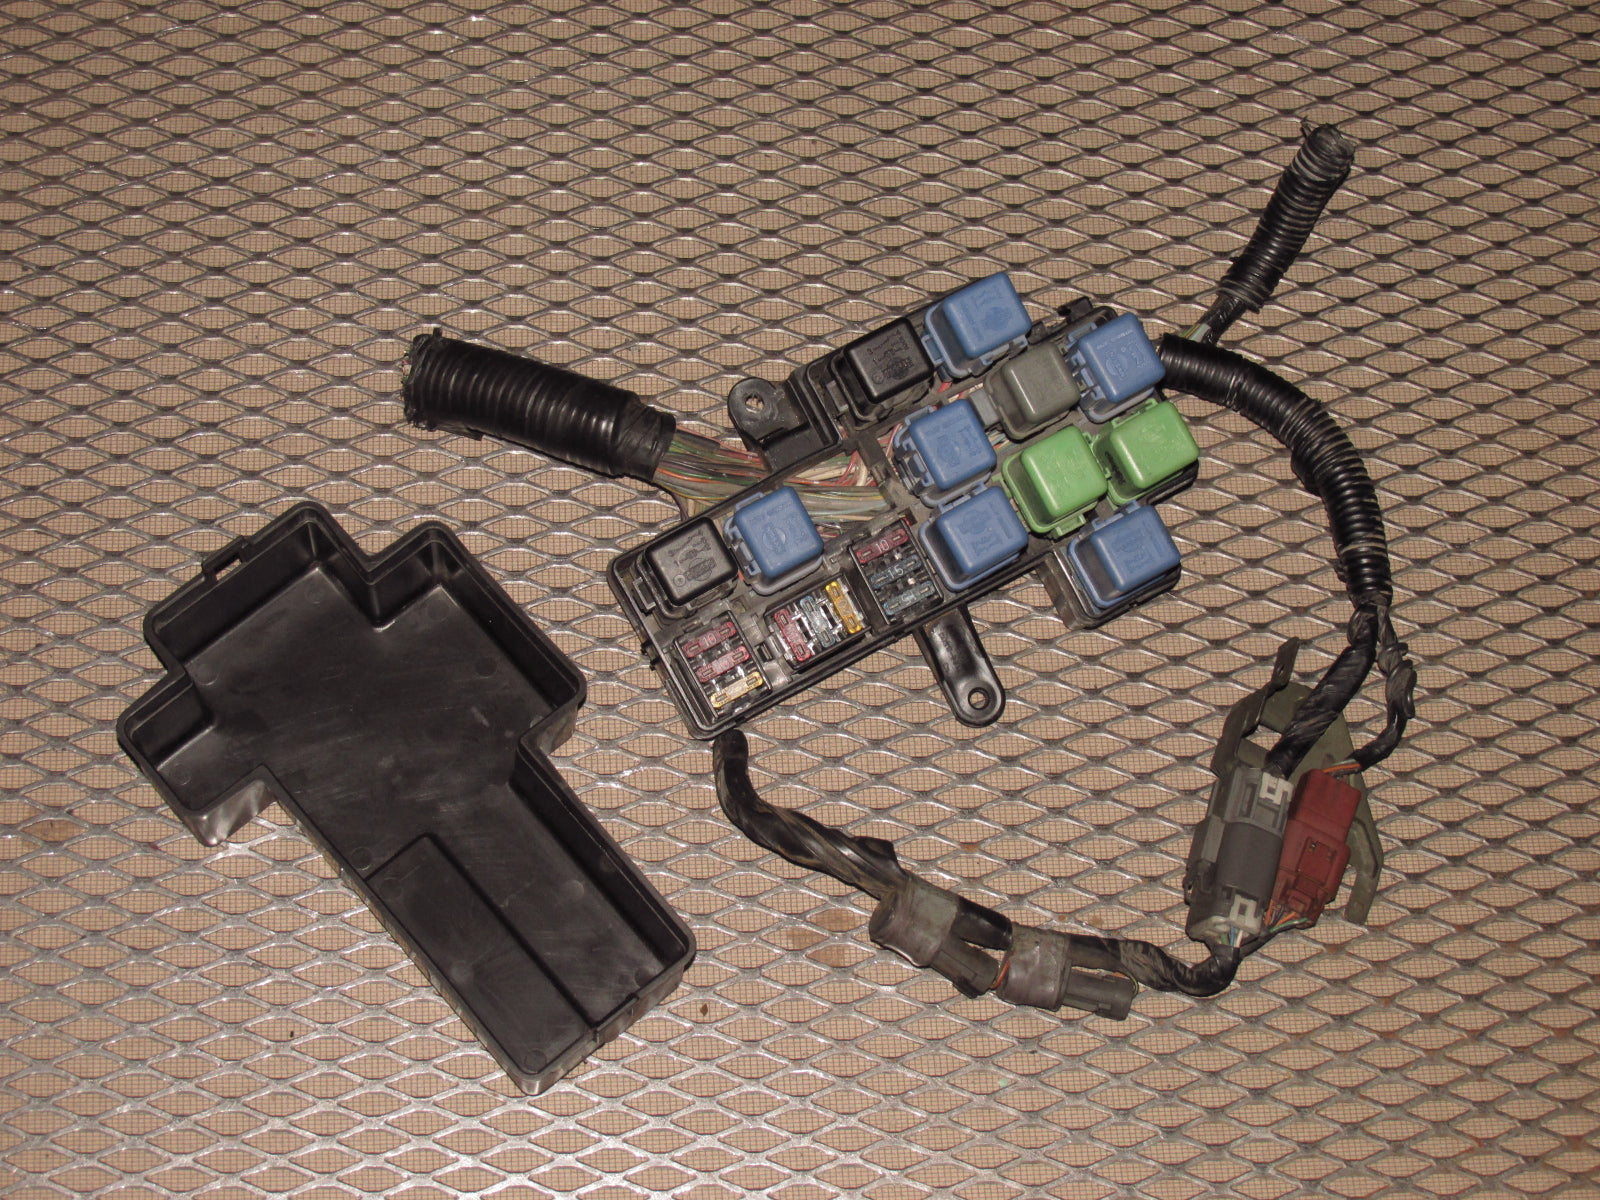 90 91 92 93 94 95 96 Nissan 300zx Oem Engine Fuse Relay Box Wiring